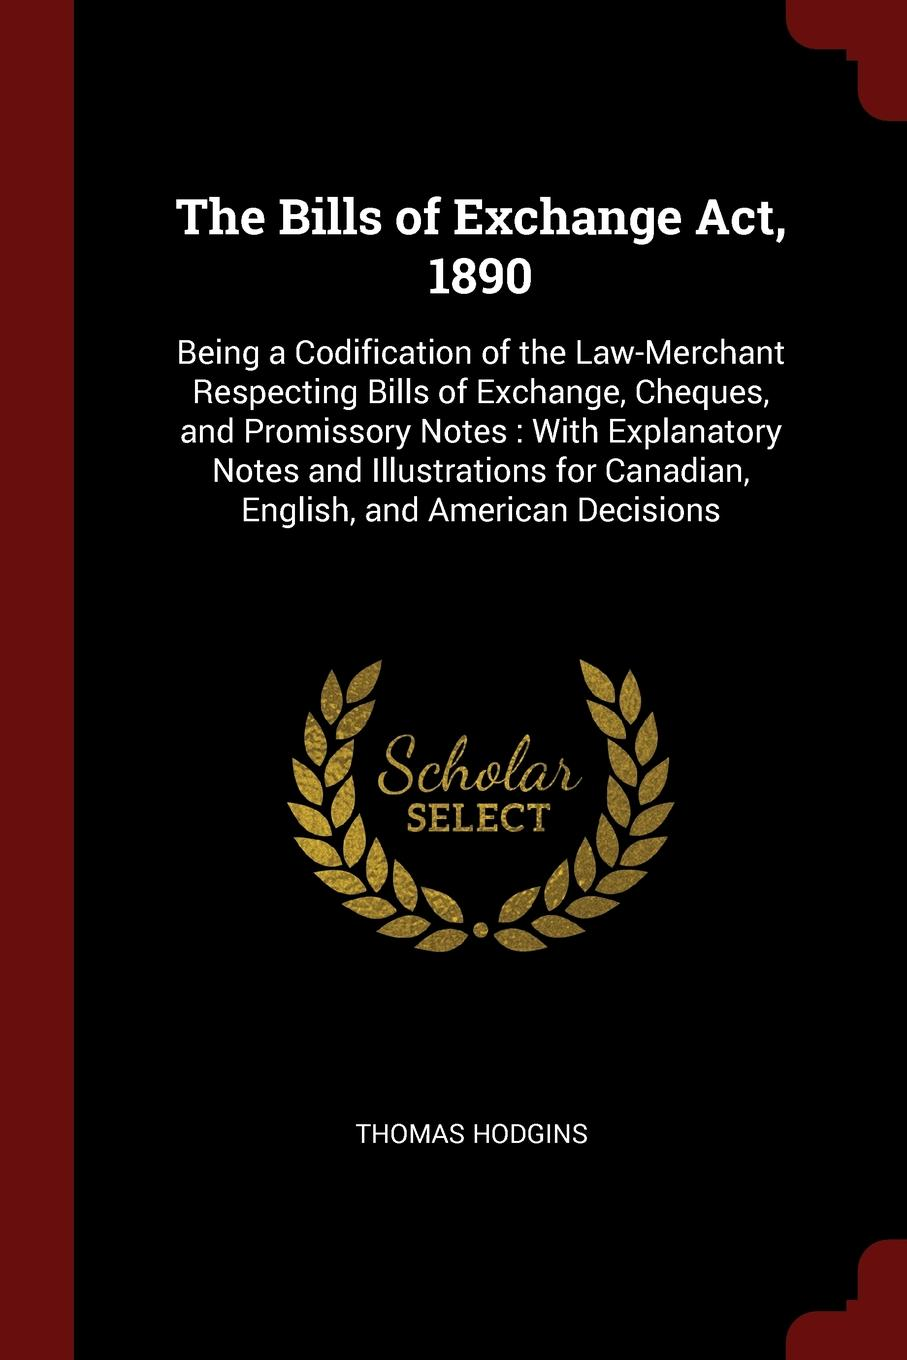 The Bills of Exchange Act, 1890. Being a Codification of the Law-Merchant Respecting Bills of Exchange, Cheques, and Promissory Notes : With Explanatory Notes and Illustrations for Canadian, English, and American Decisions